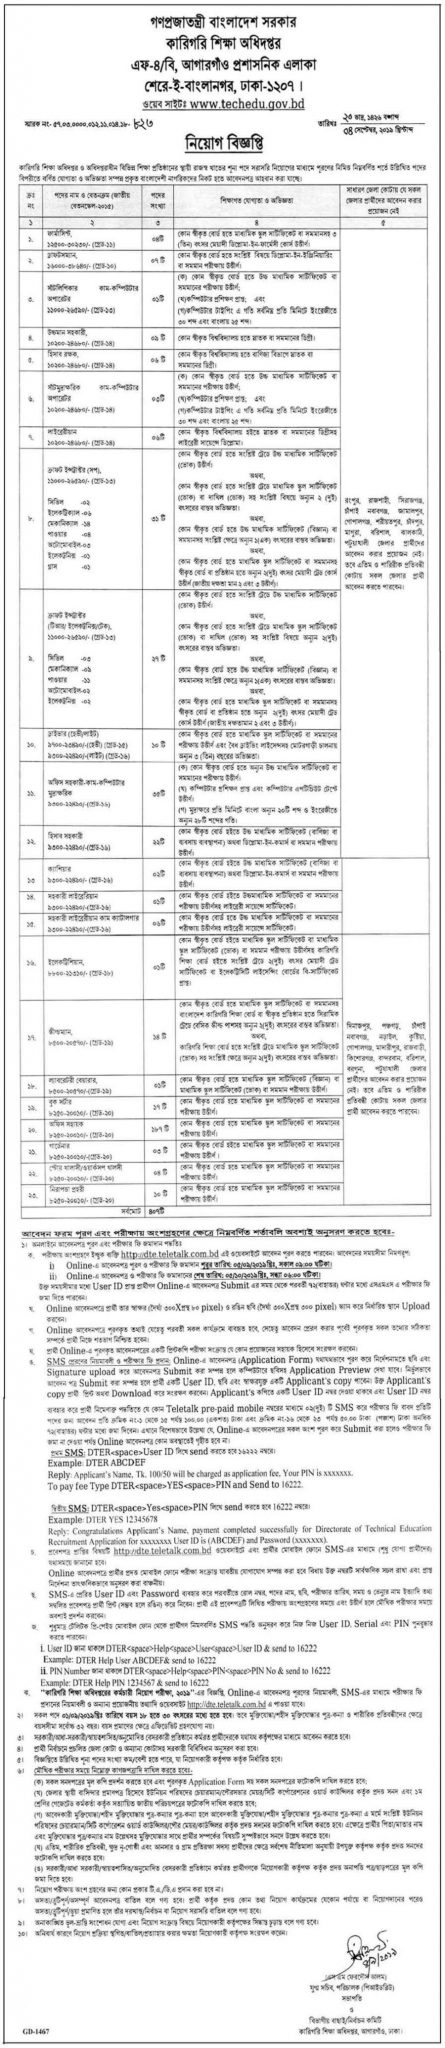 Bangladesh Technical Education Board (BTEB) Job Circular 2019